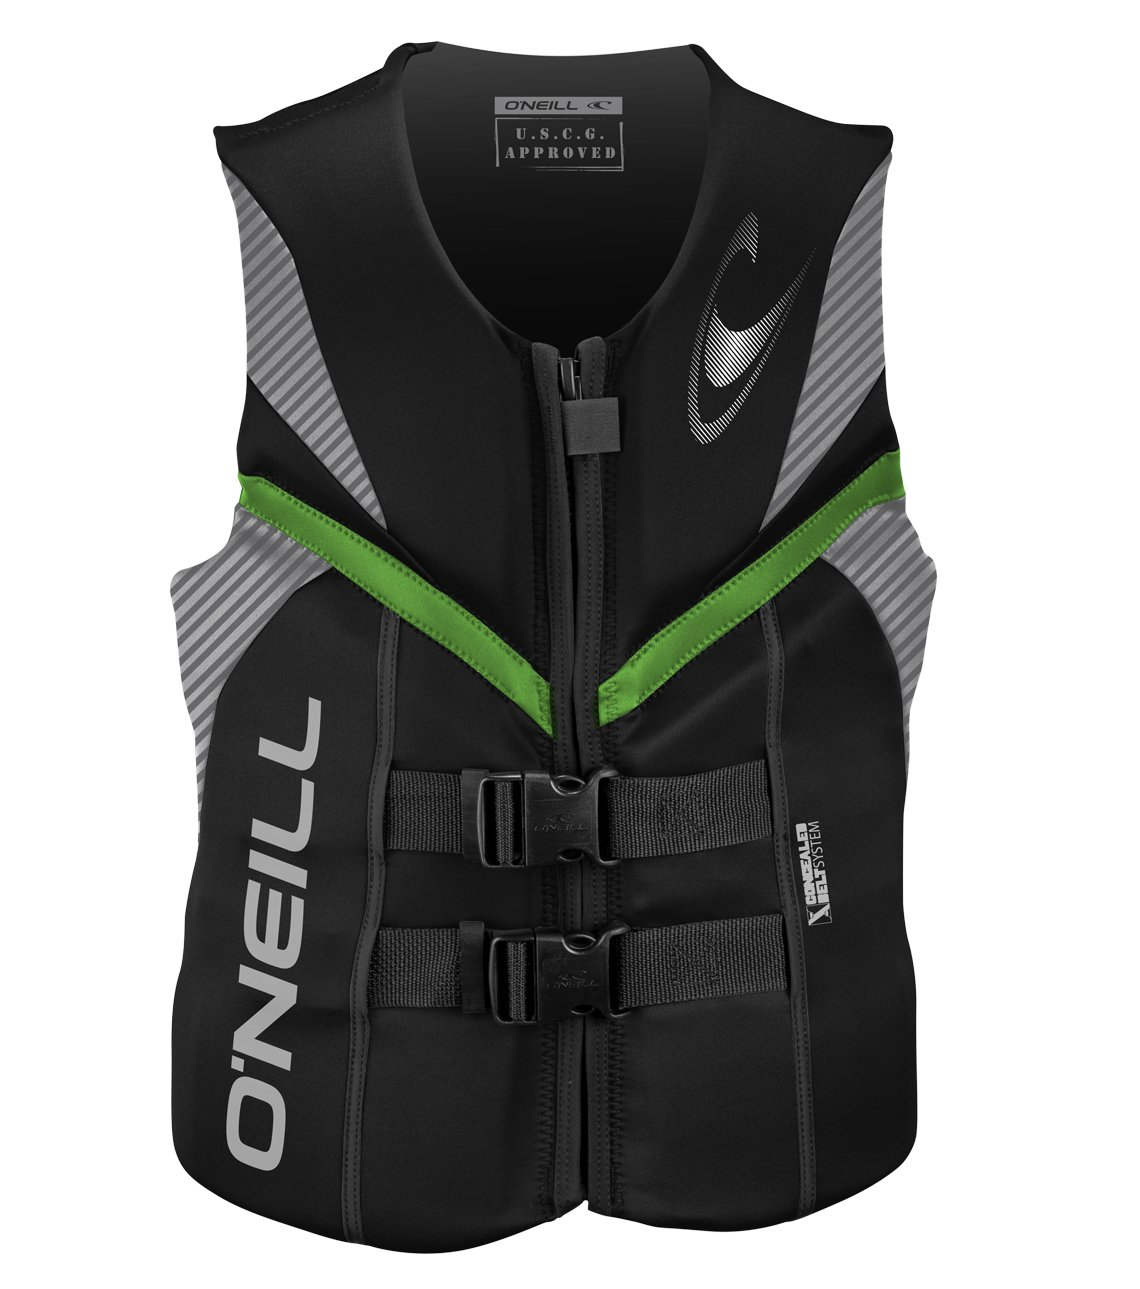 O'Neill Wetsuits Men's Reactor USCG Life Vest BLKLUNDGLO MED, Black/Lunar/Day-Glo, Medium by O'Neill Wetsuits